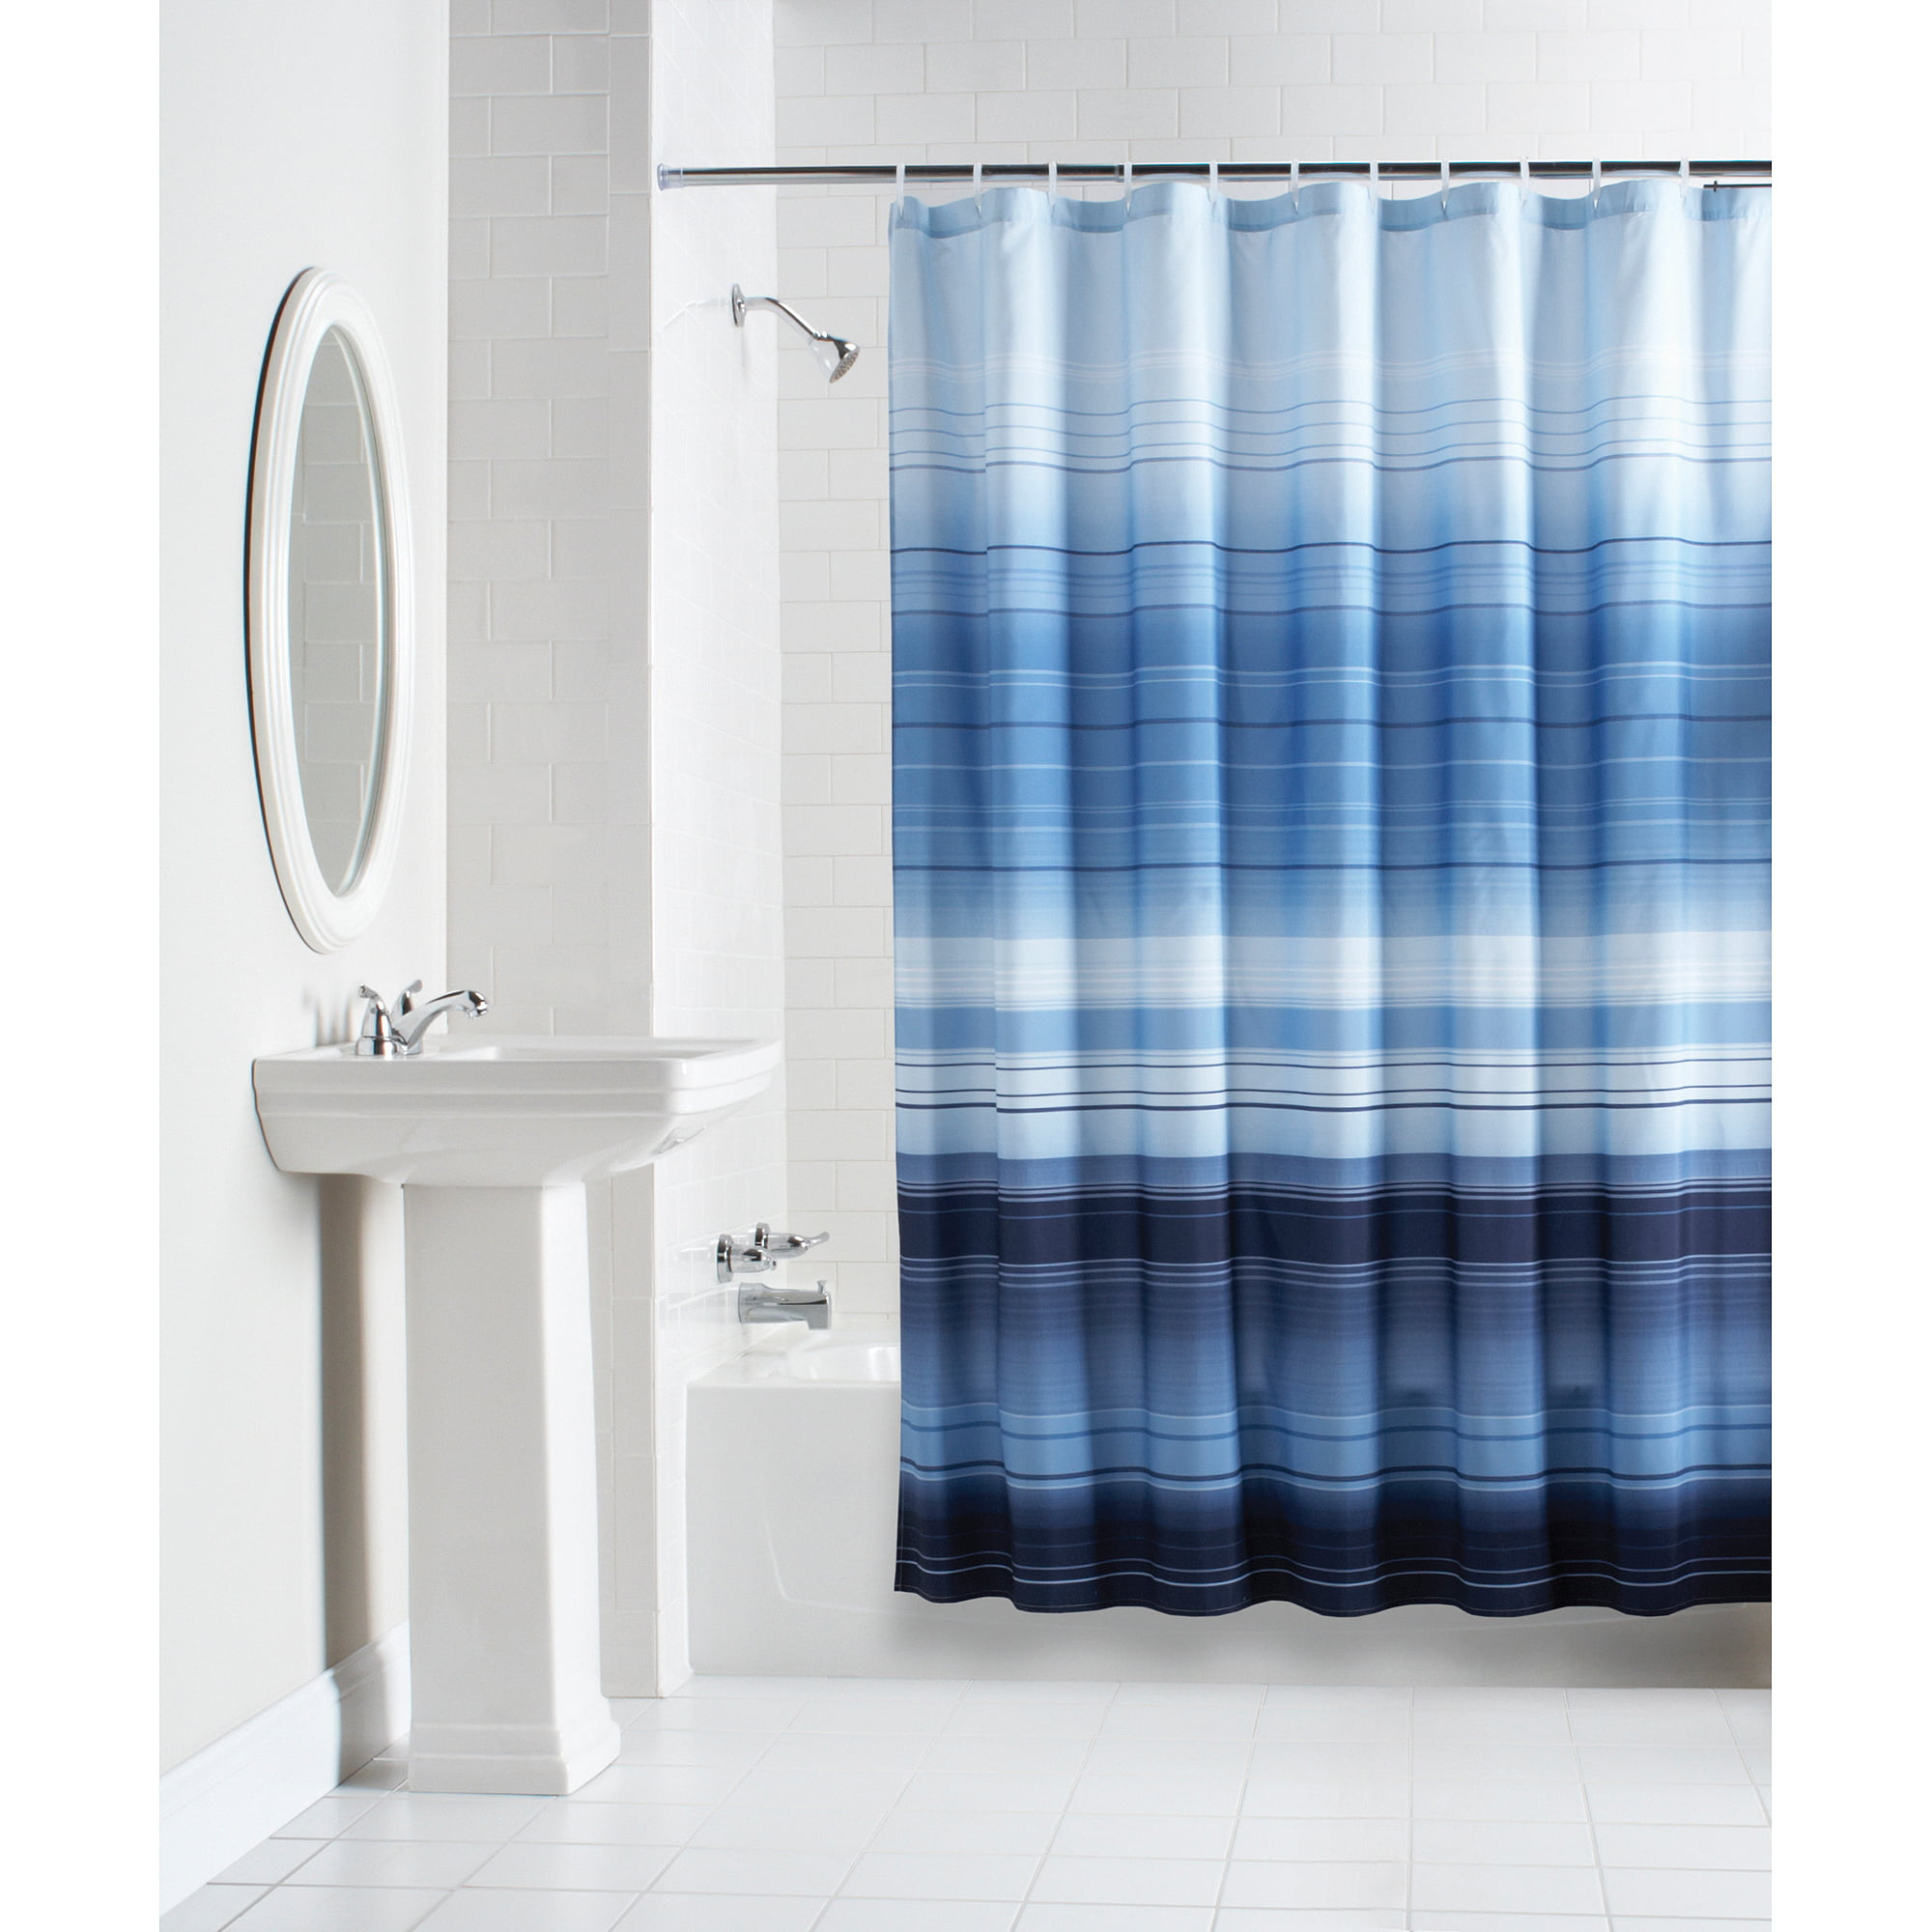 Mainstays Ombre Stripe Fabric Shower Curtain - Walmart.com